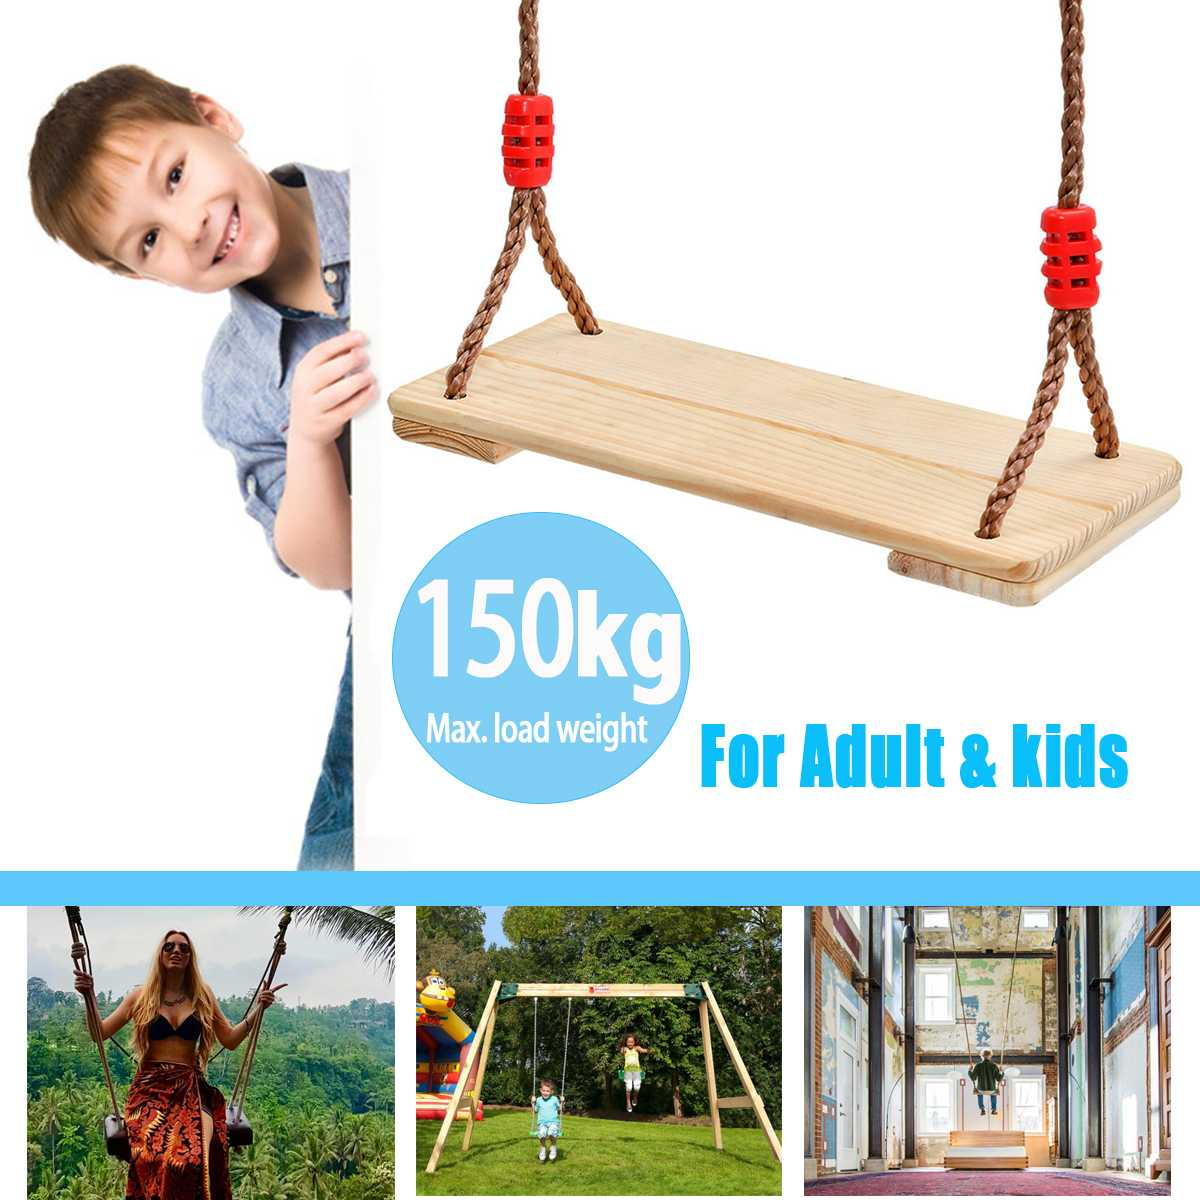 150Kg Wooden Swing Seat Chair Adjustable Rope For Children Adults Outdoor Games